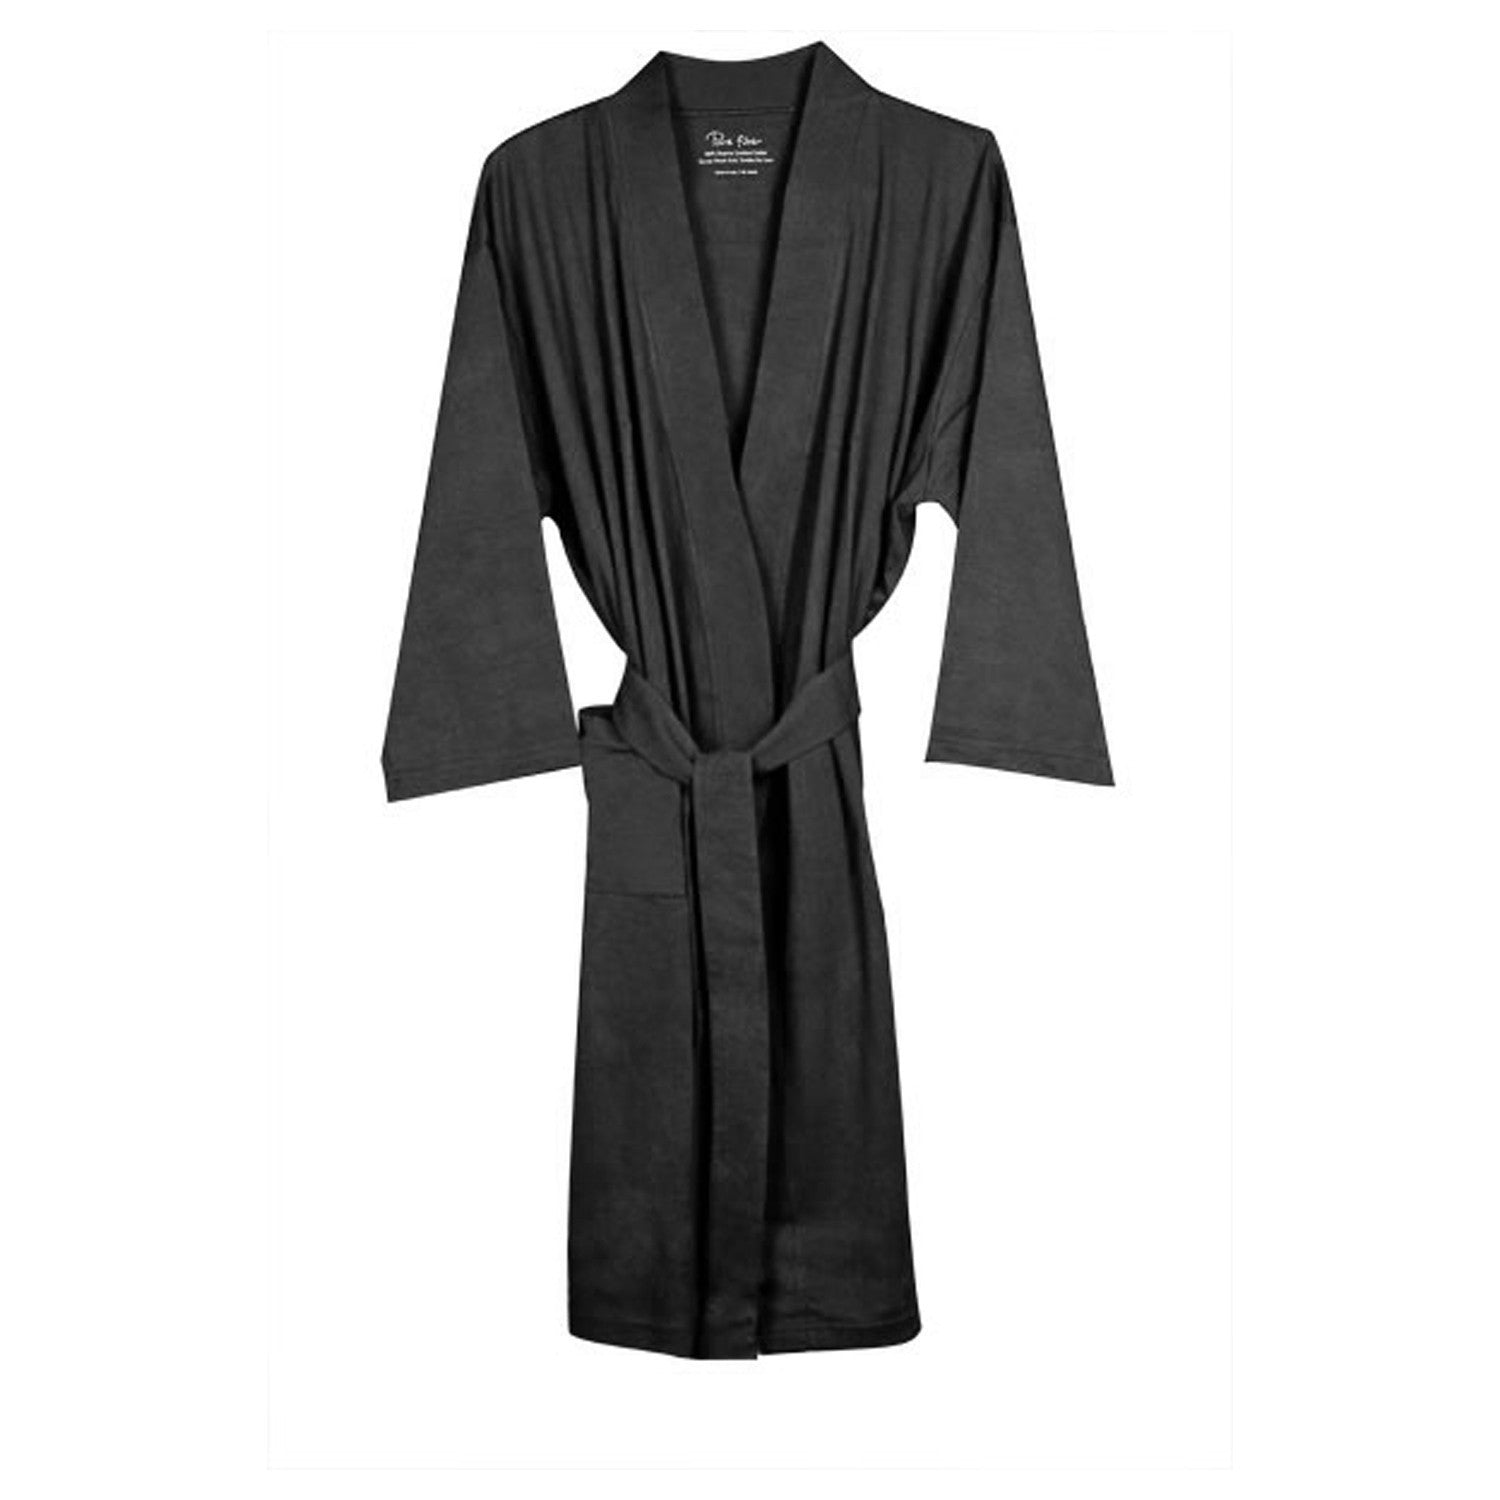 5b3e0f56f7 Organic Cotton Jersey Knit Robe in Gray-Bathrobes-Alan Decor